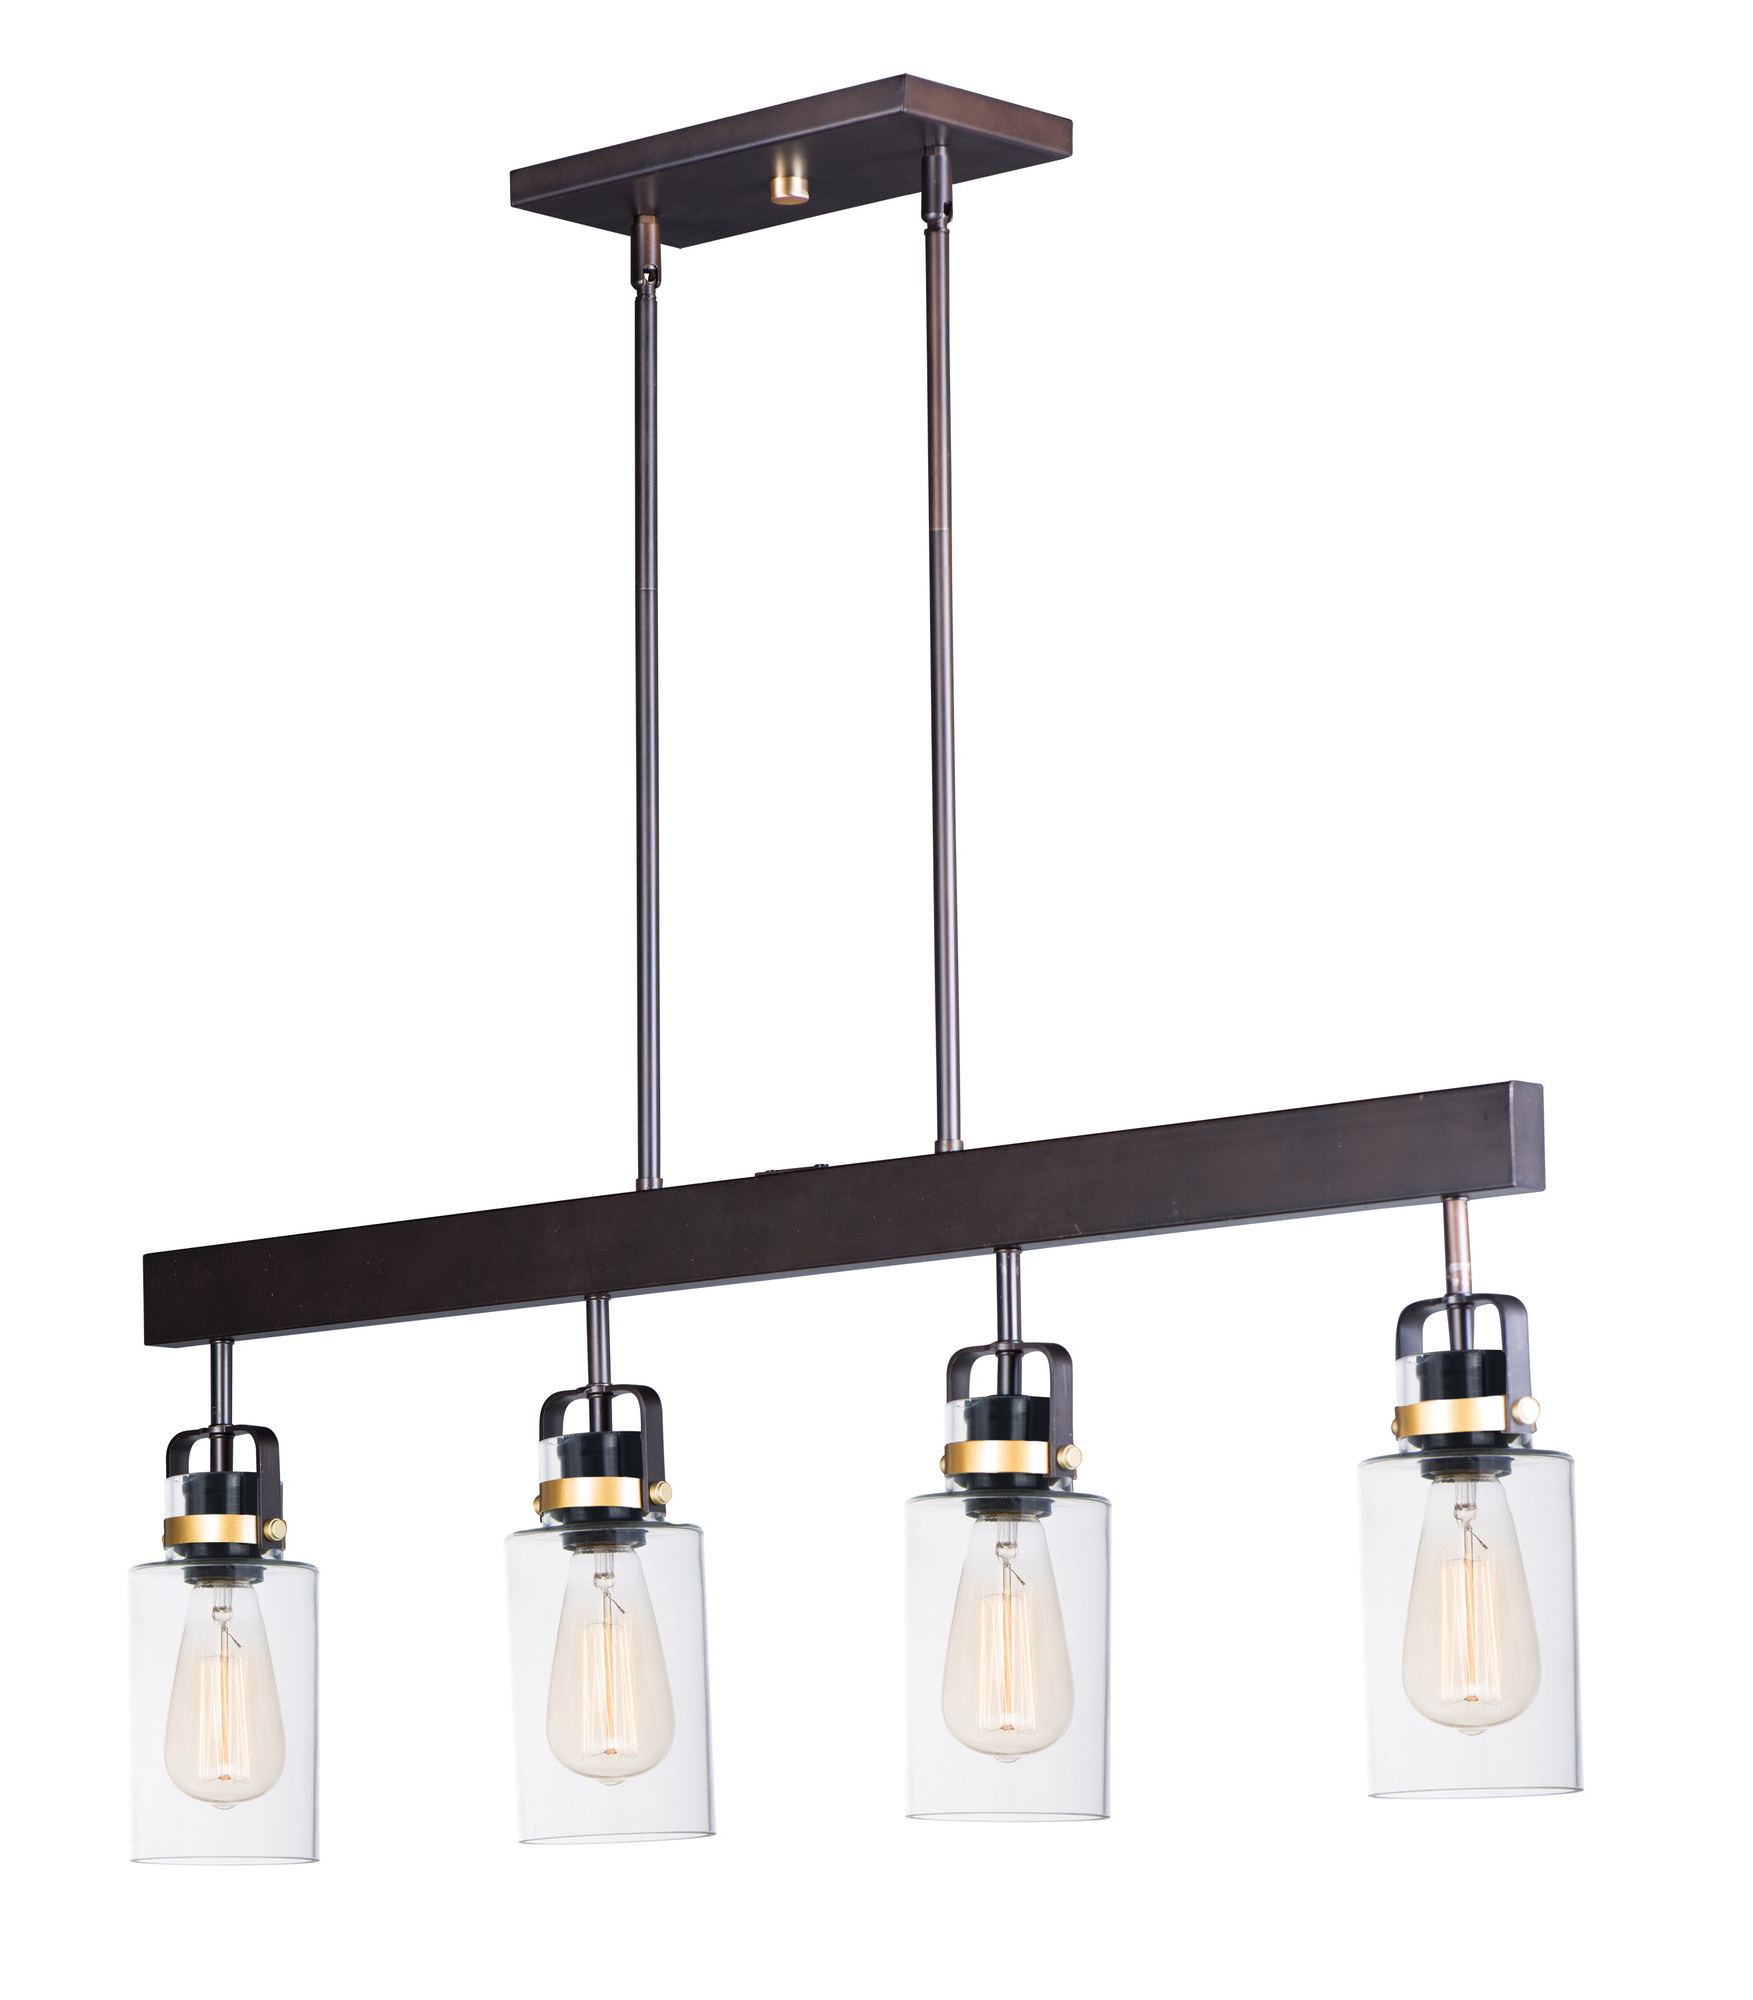 Details About Breakwater Bay Killingsworth 4-Light Kitchen Island Pendant intended for Best and Newest Dunson 3-Light Kitchen Island Pendants